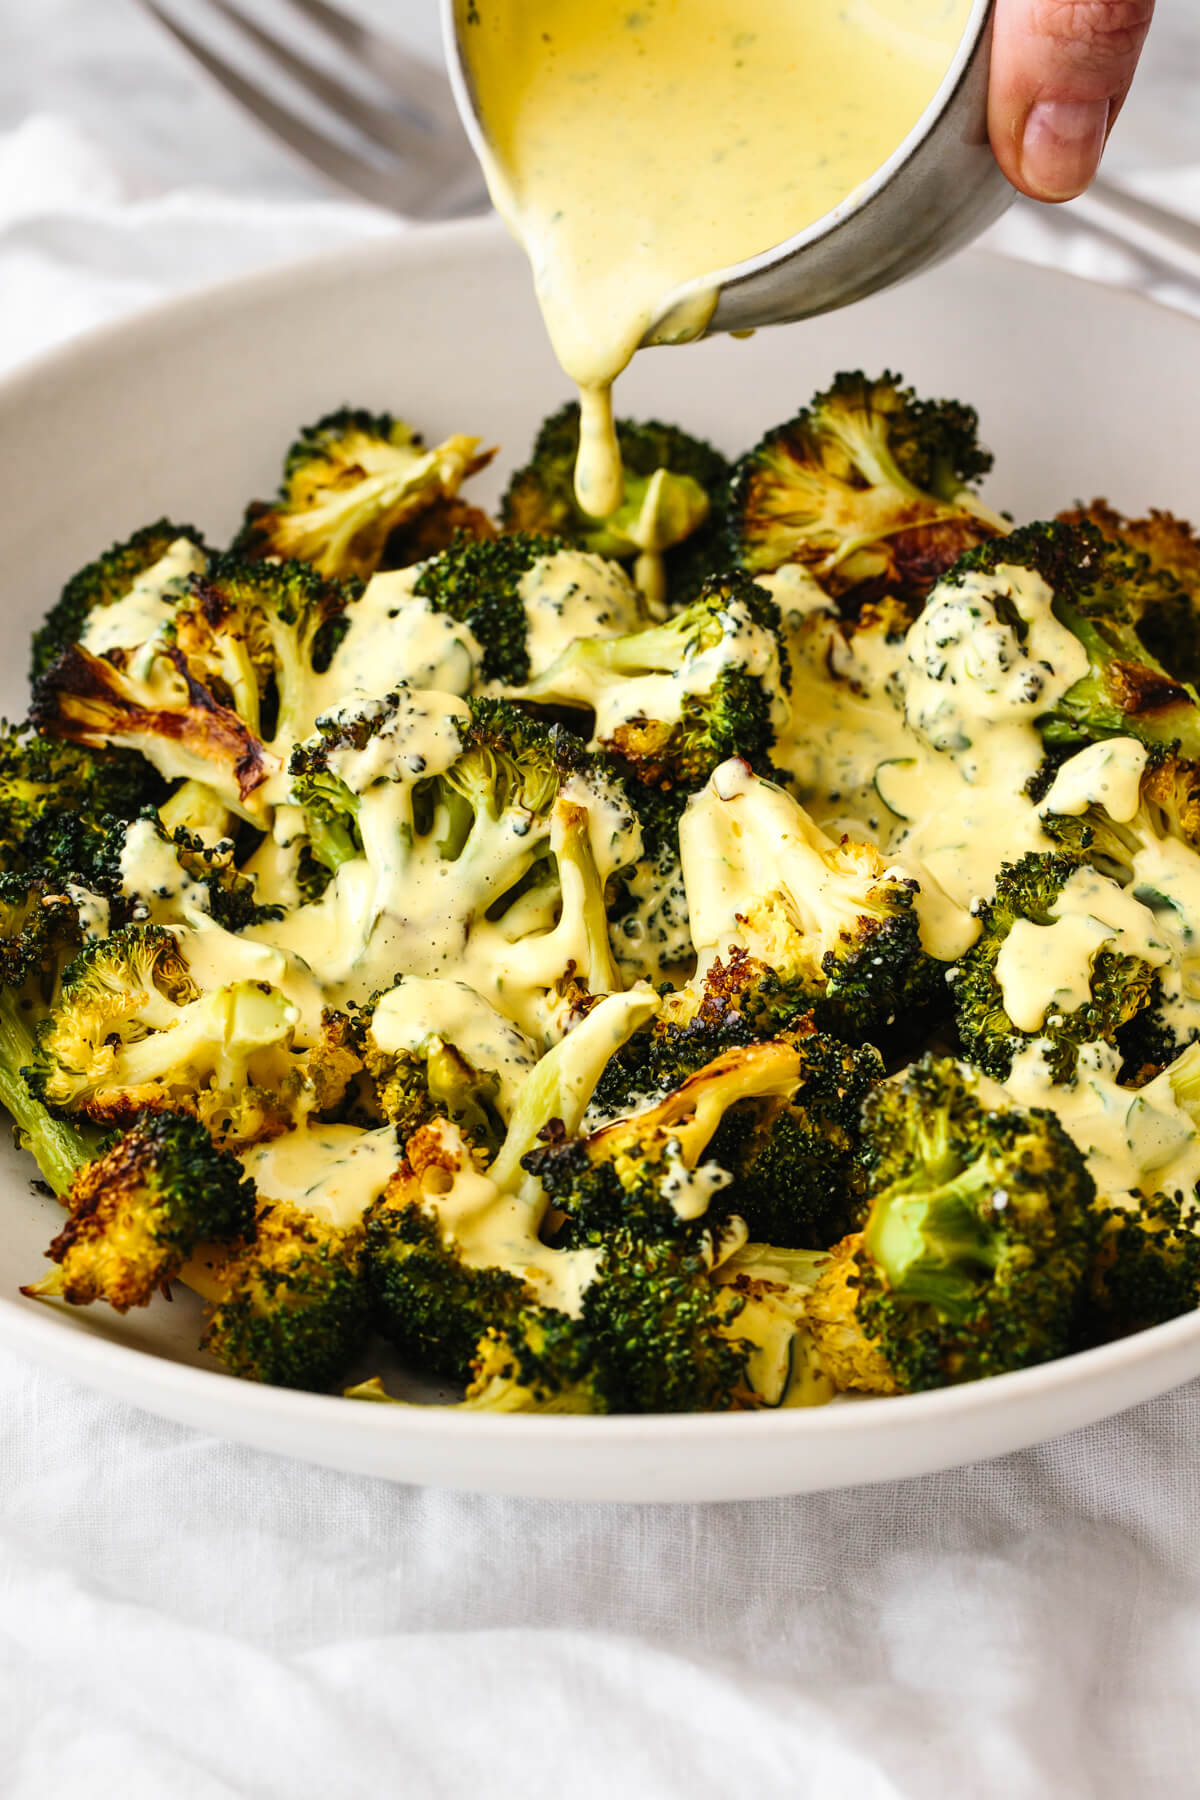 Pouring hollandaise sauce over roasted broccoli.